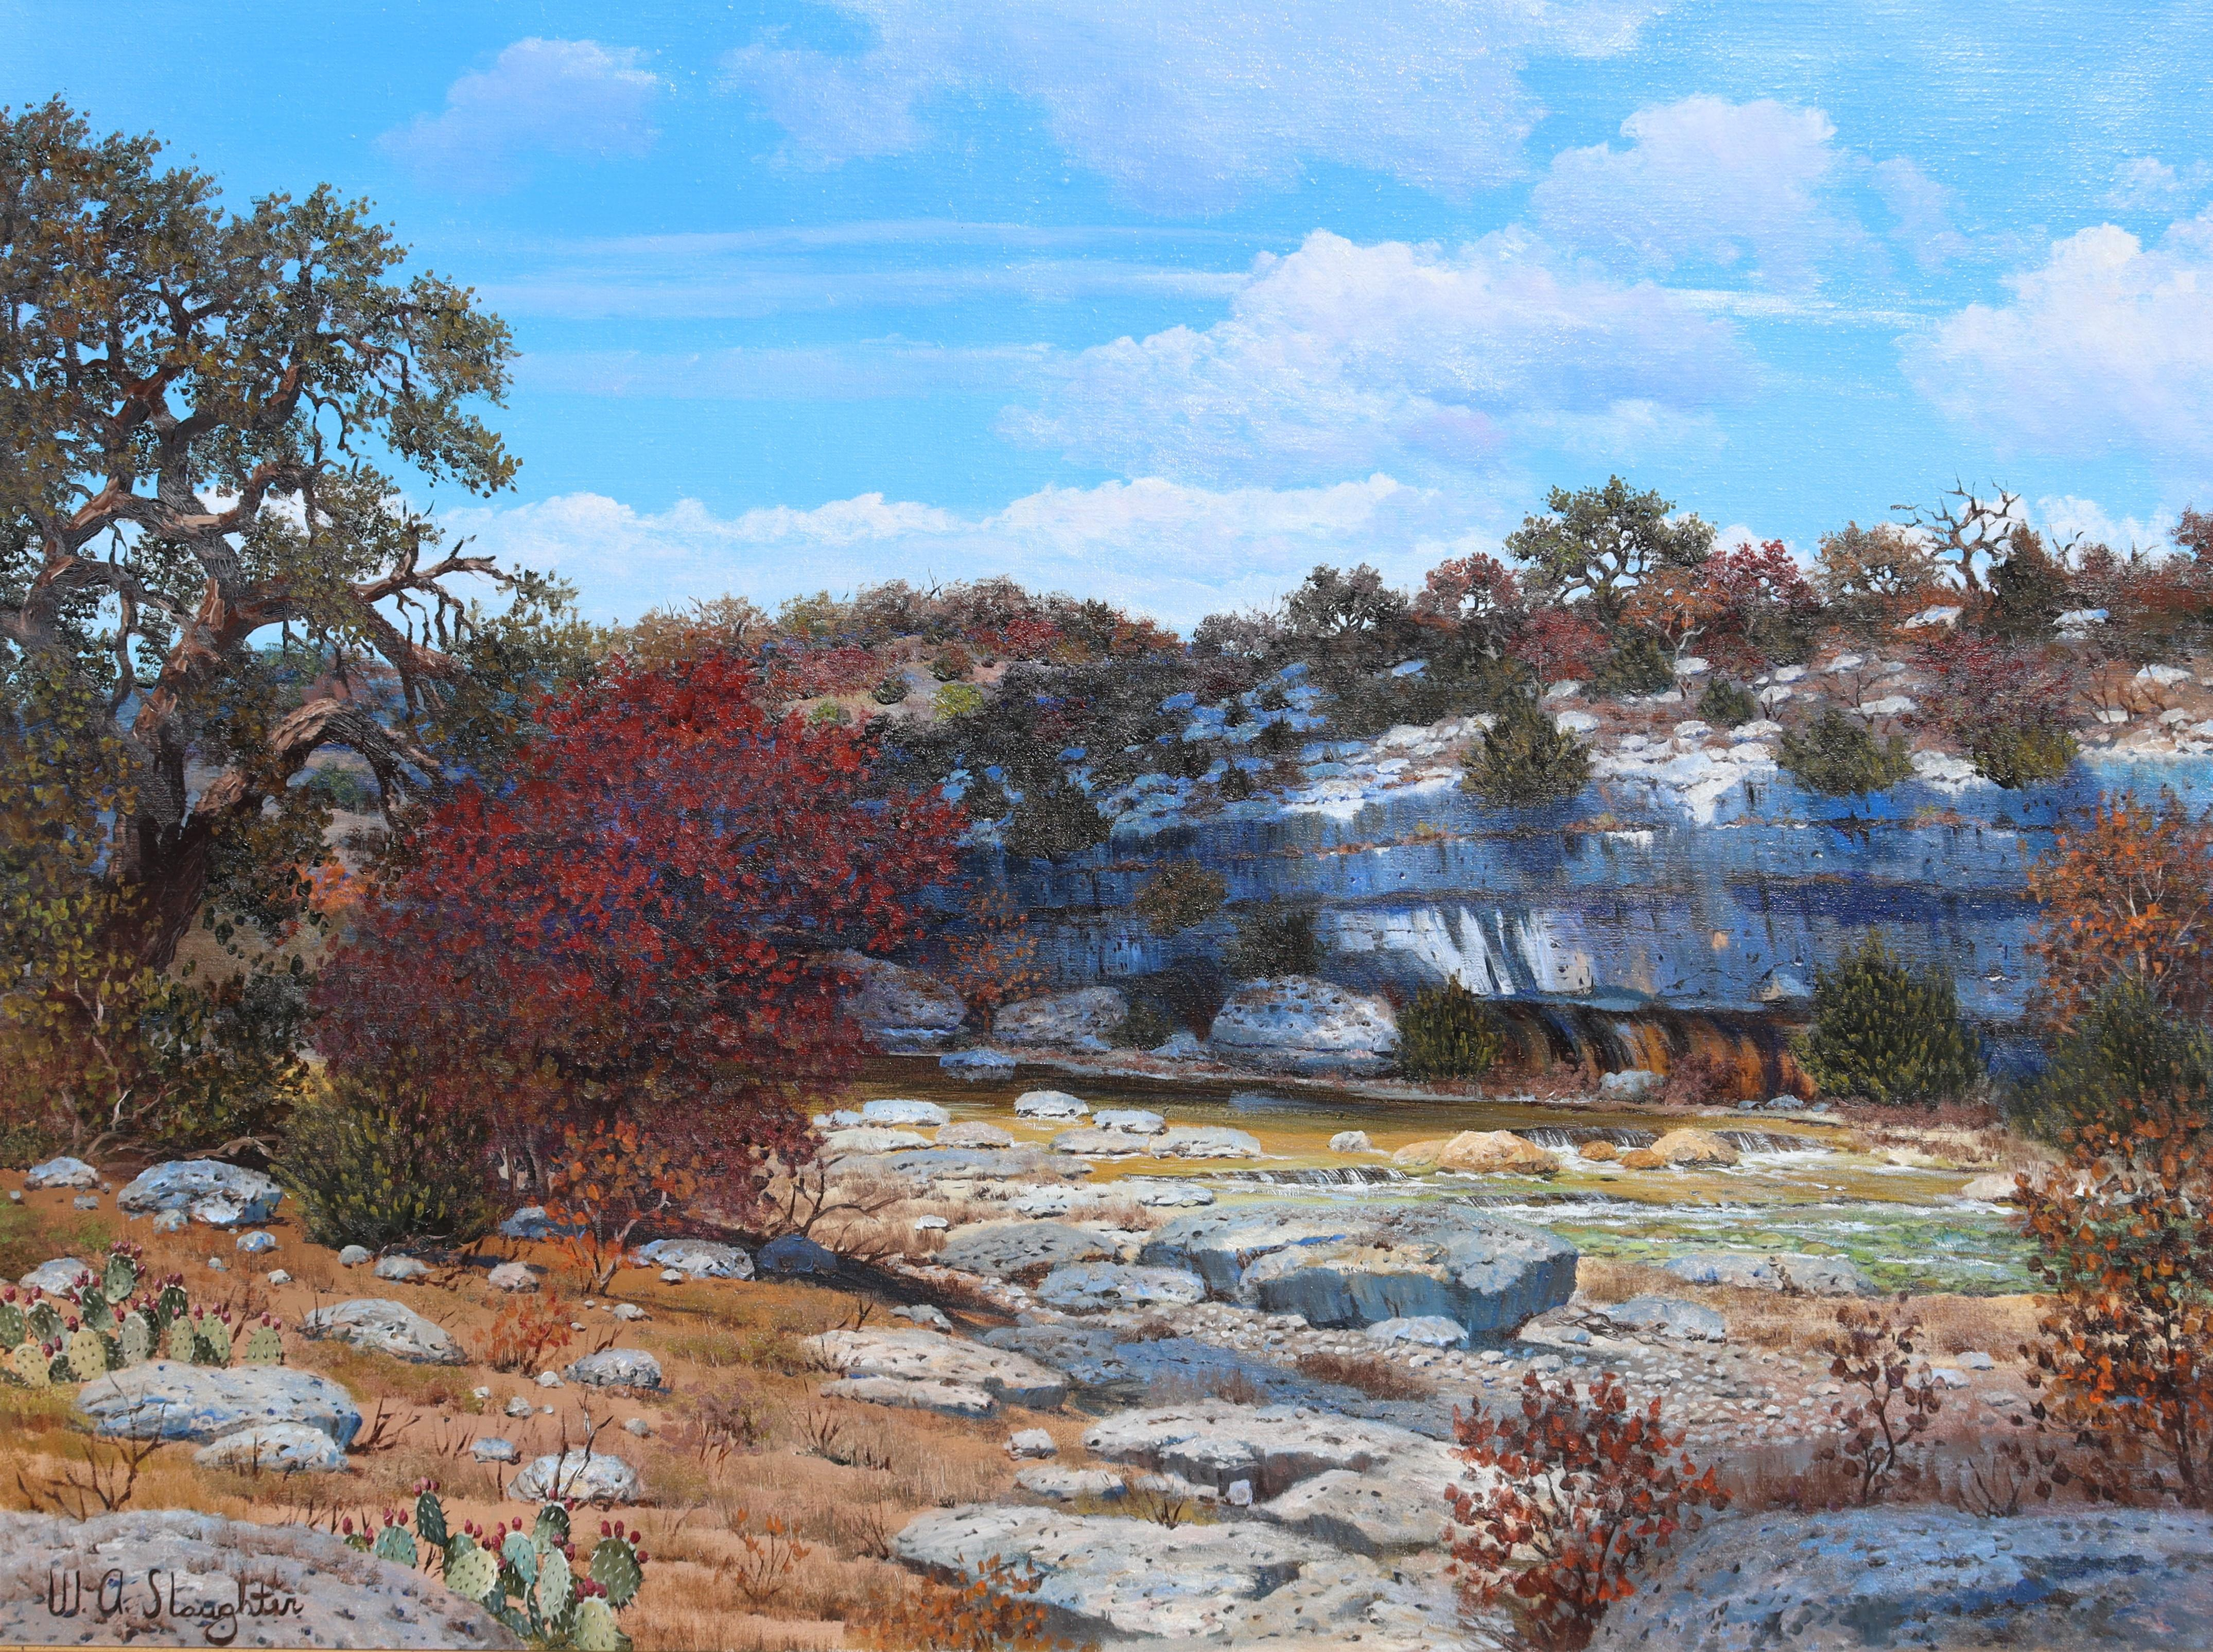 Autumn, Texas Landscape at the Bluff